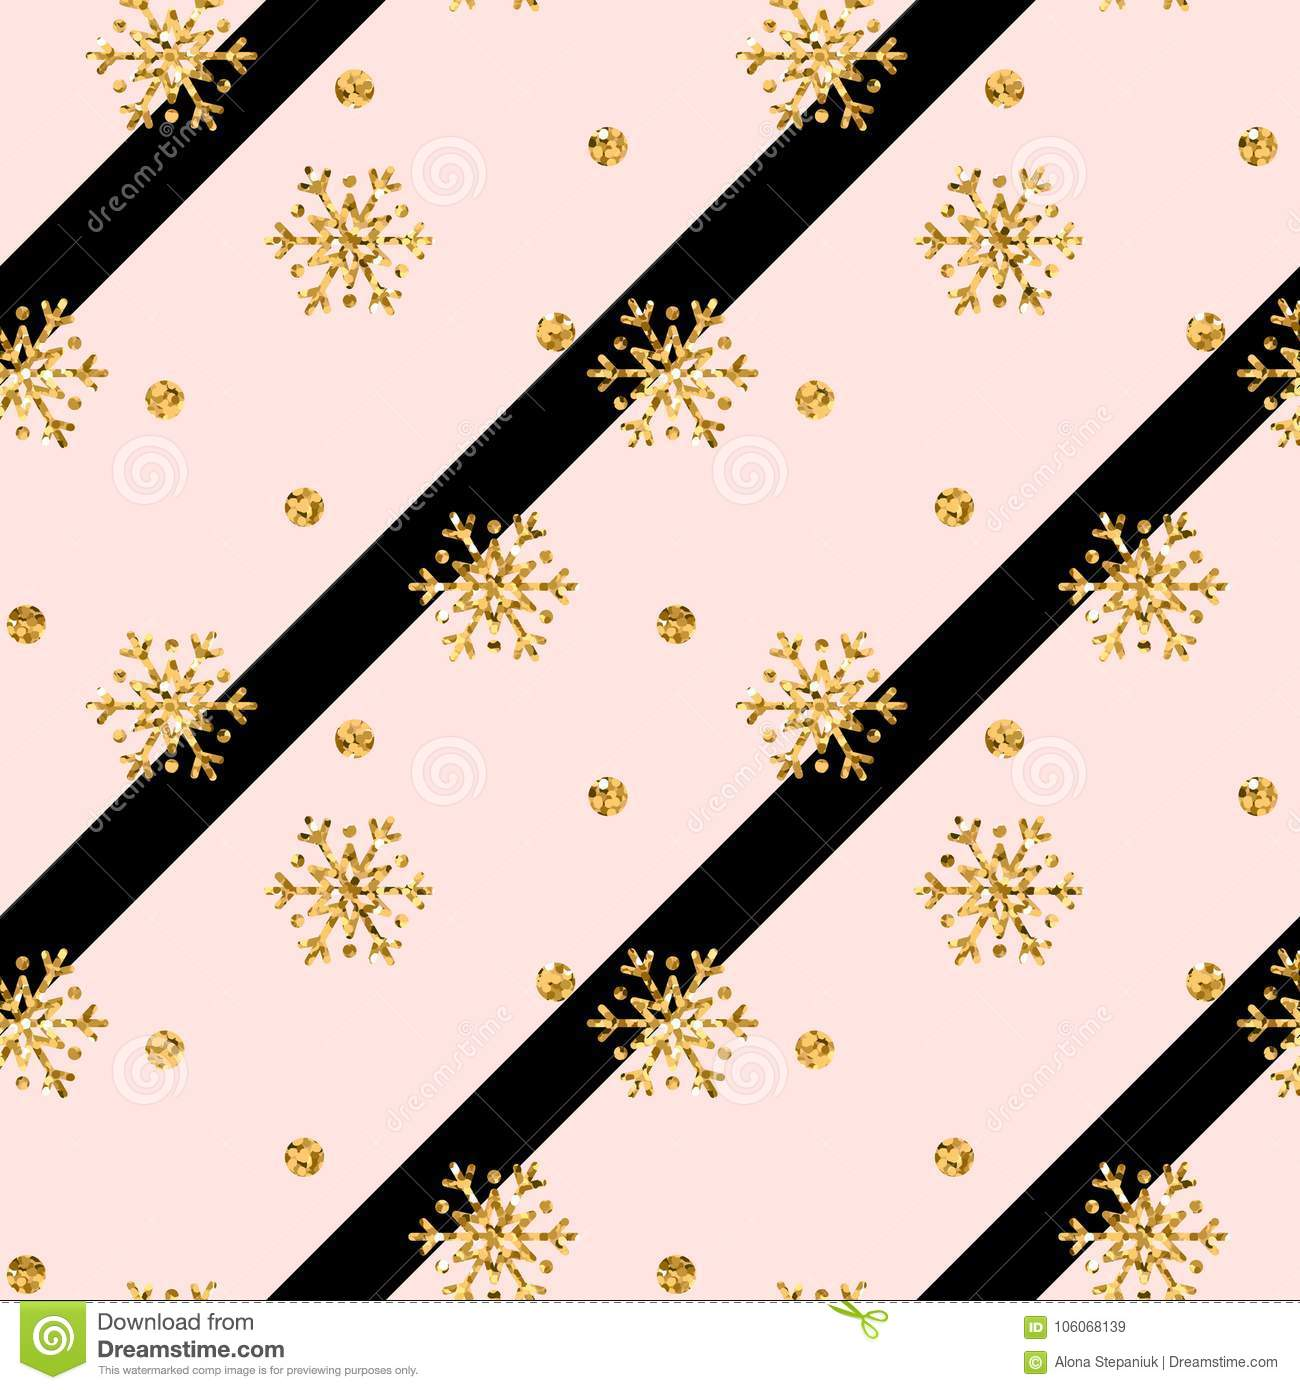 christmas gold snowflake seamless pattern golden glitter snowflakes on pink black diagonal lines background